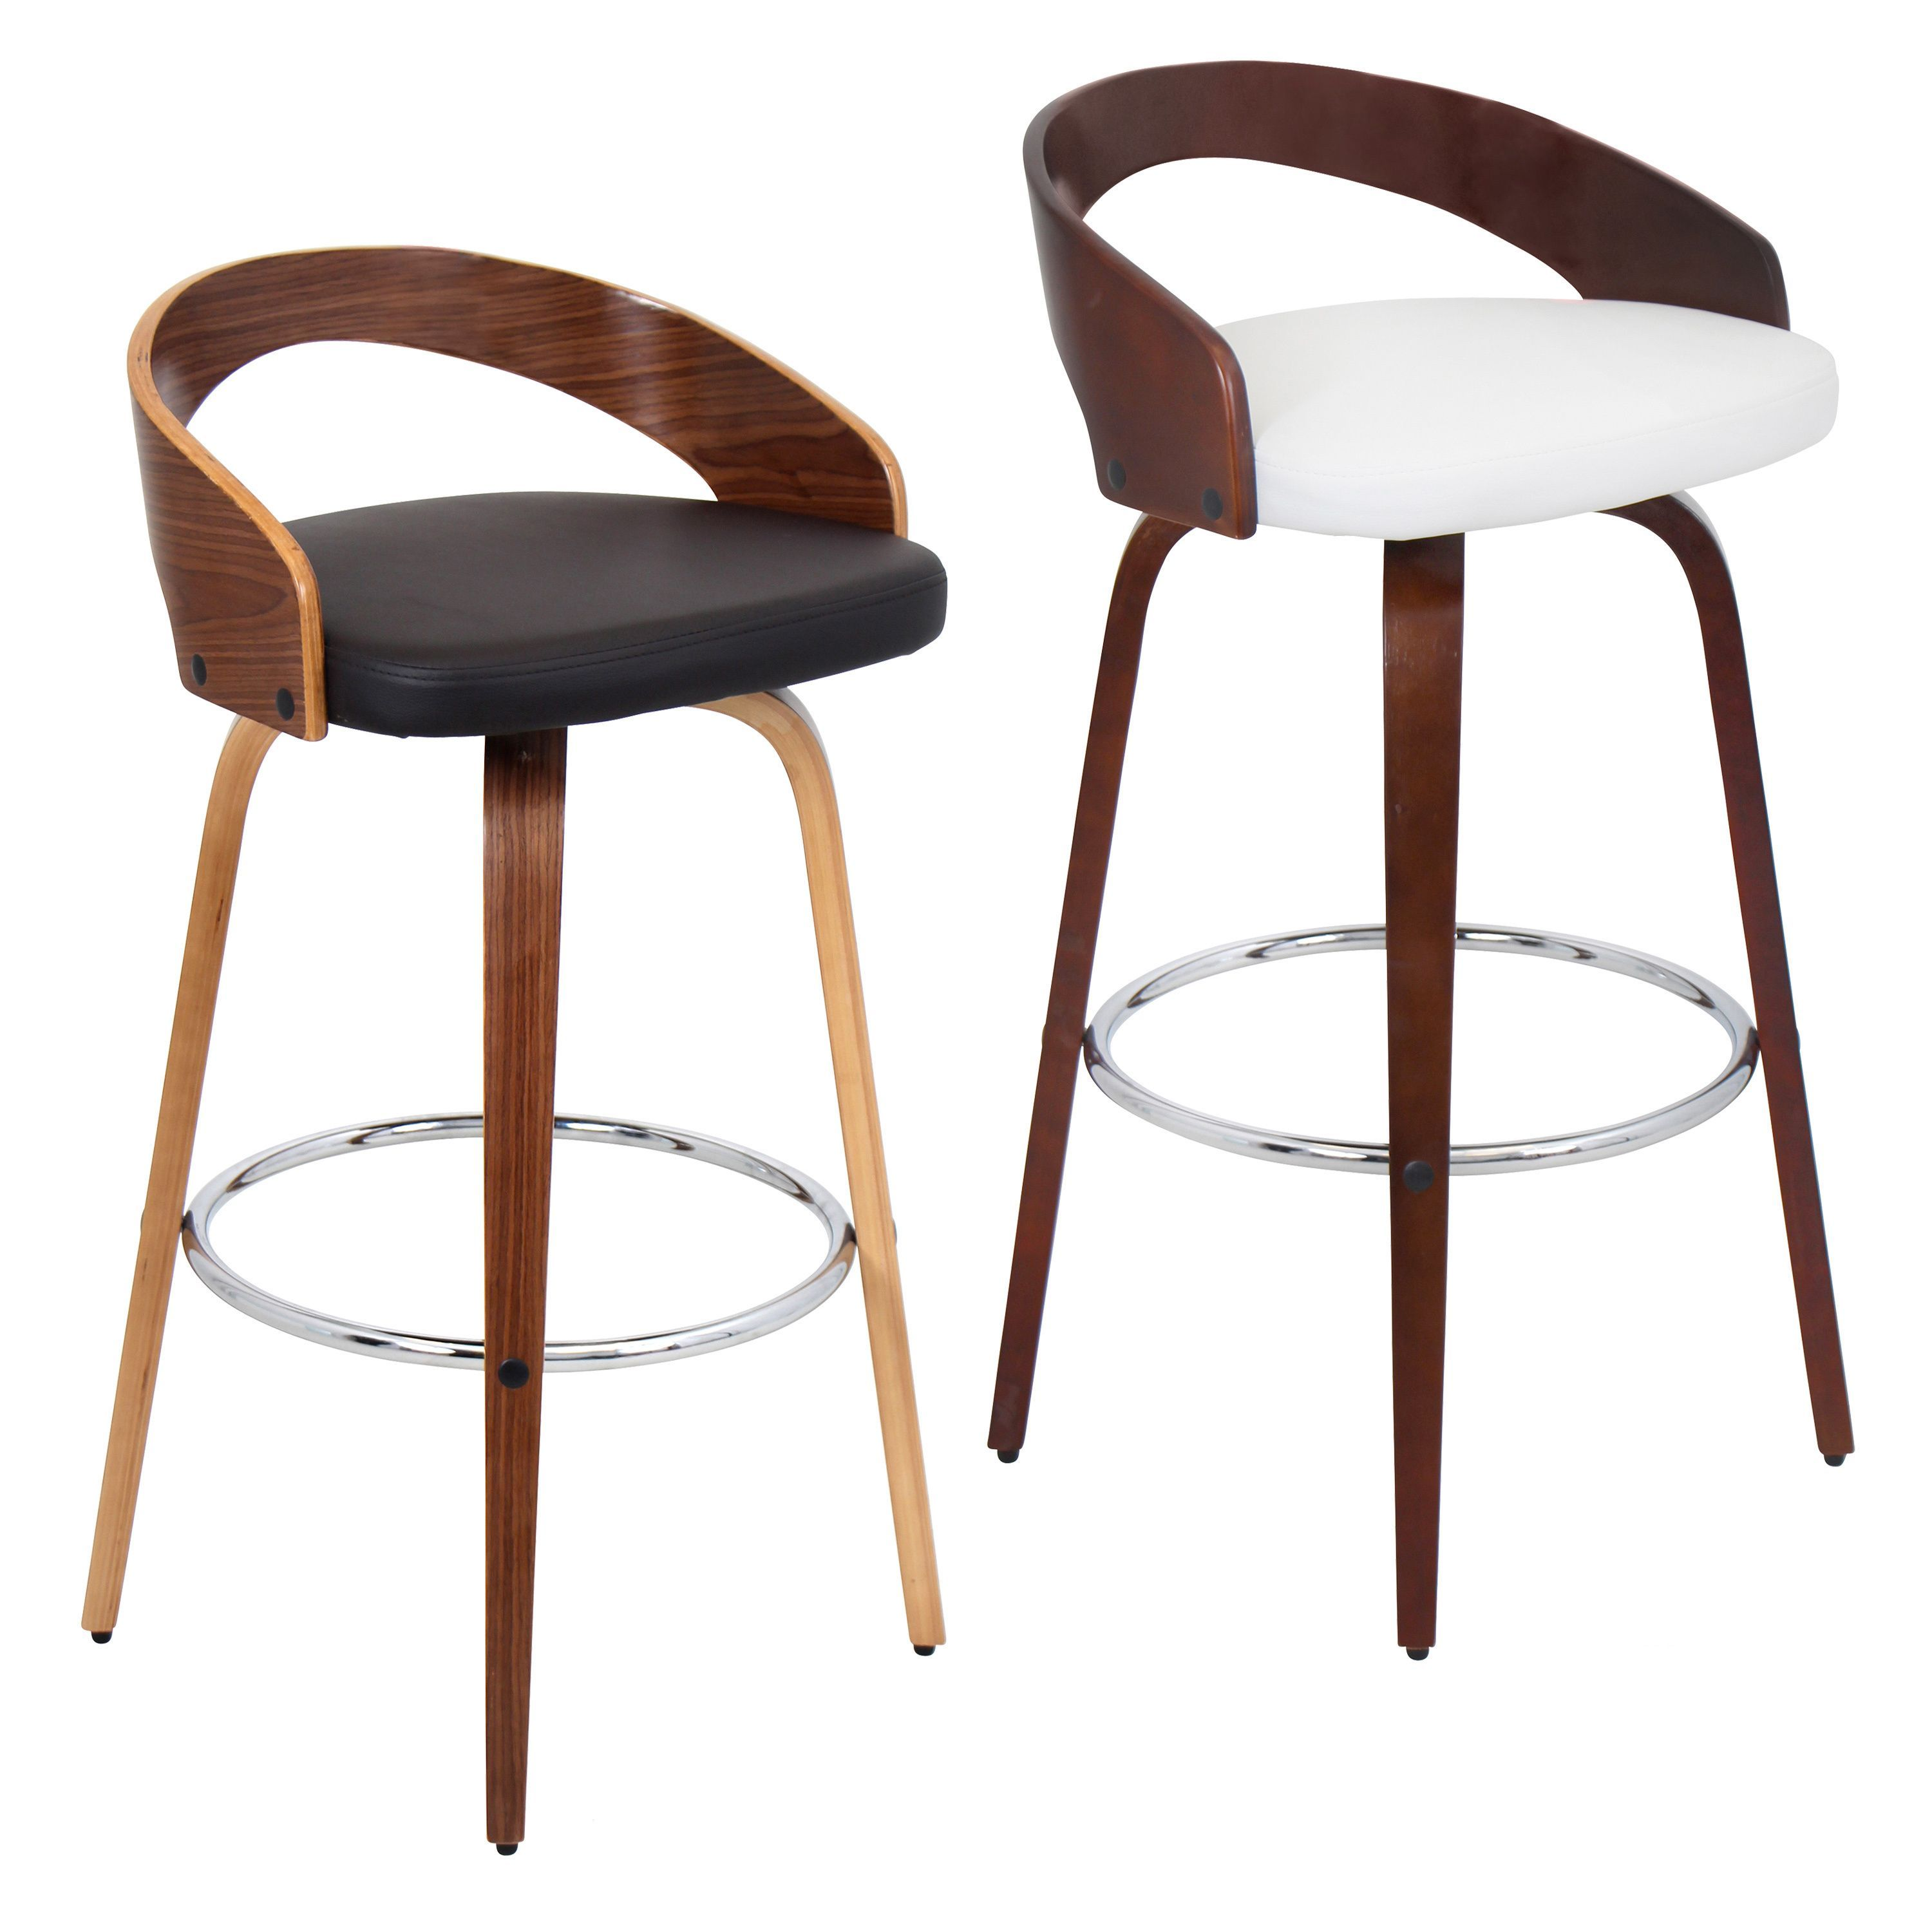 The Grotto Barstool S Curved Low Back And Rounded Legs Radiate